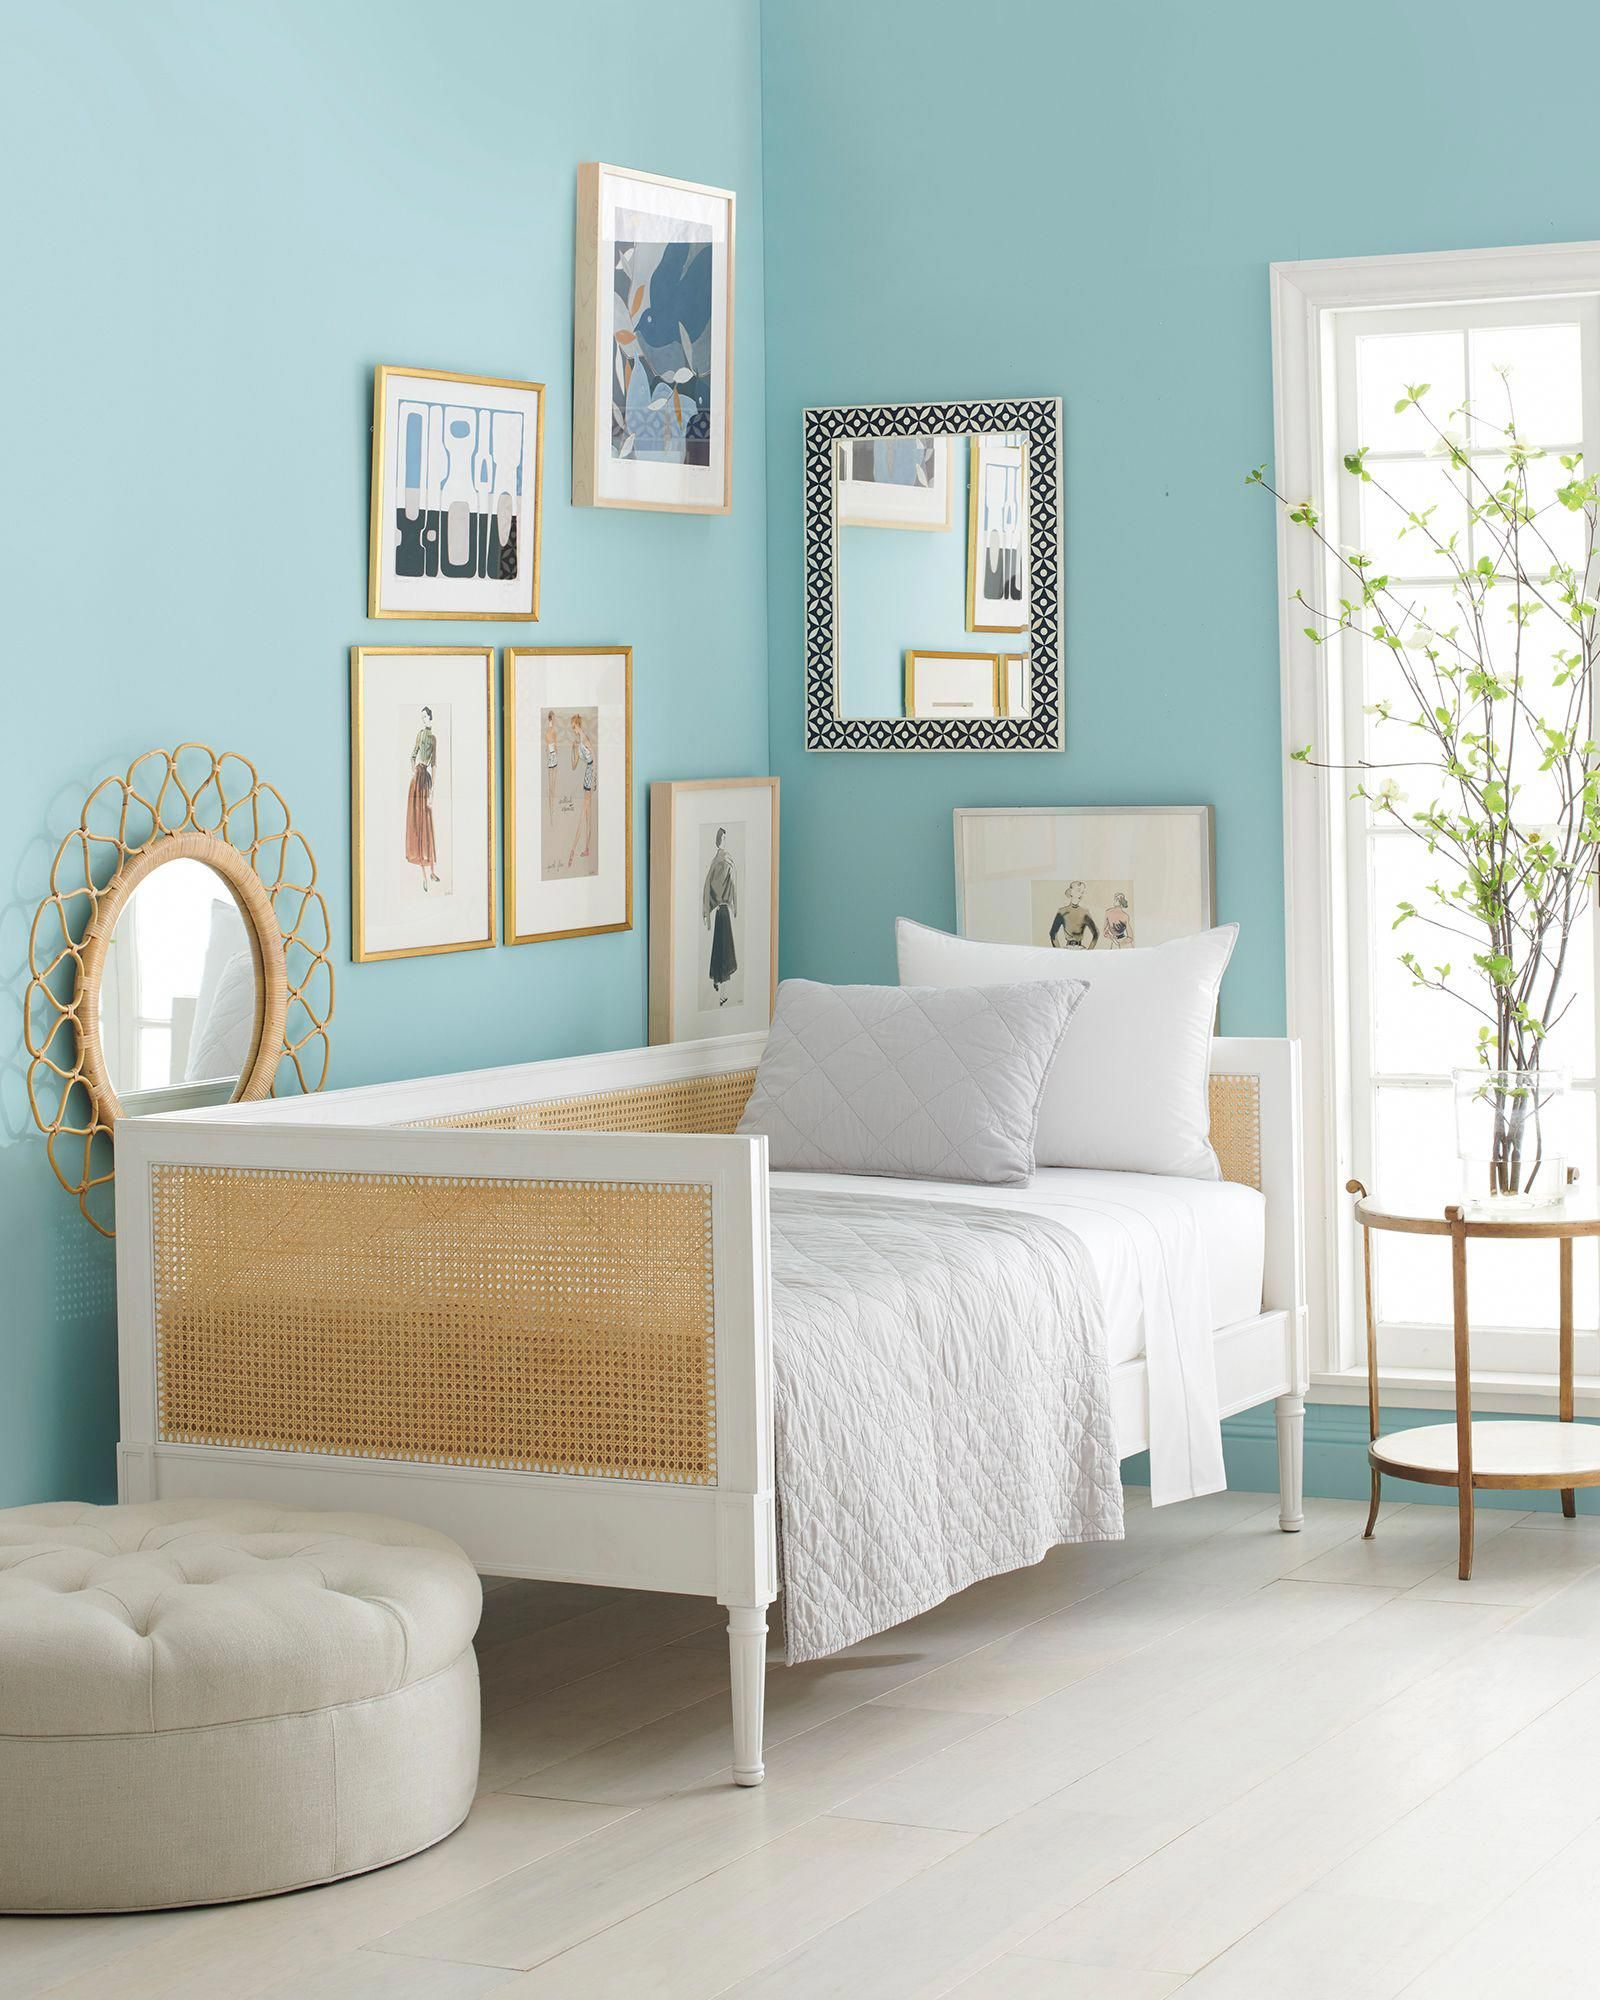 Cheap Entryway Decor - SalePrice:40$ in 2020 | Small room ...